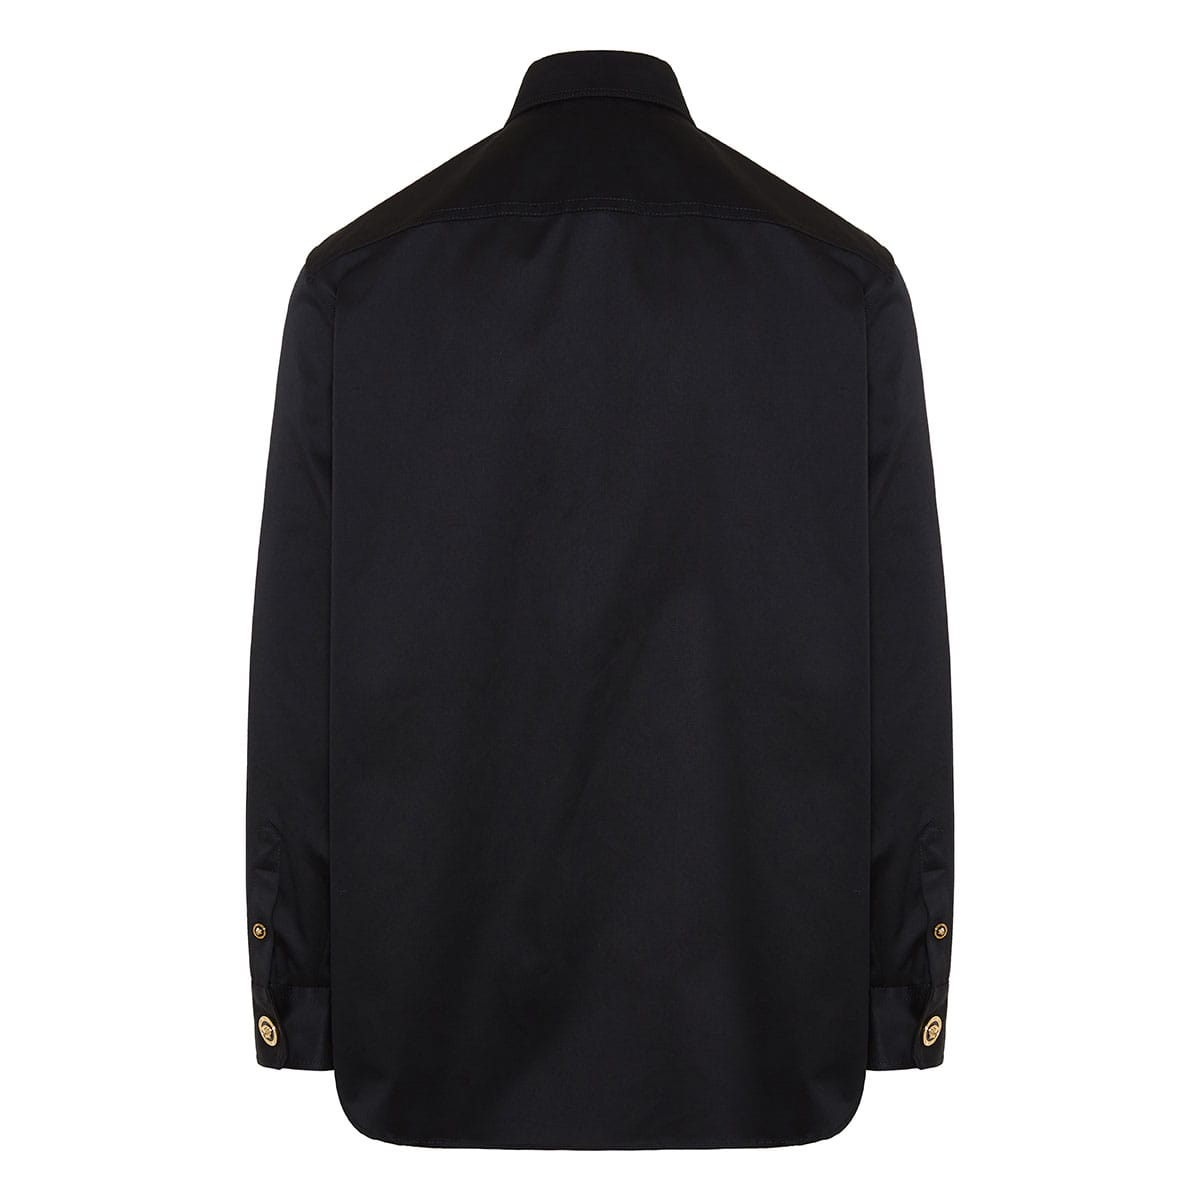 Overshirt with Medusa buttons